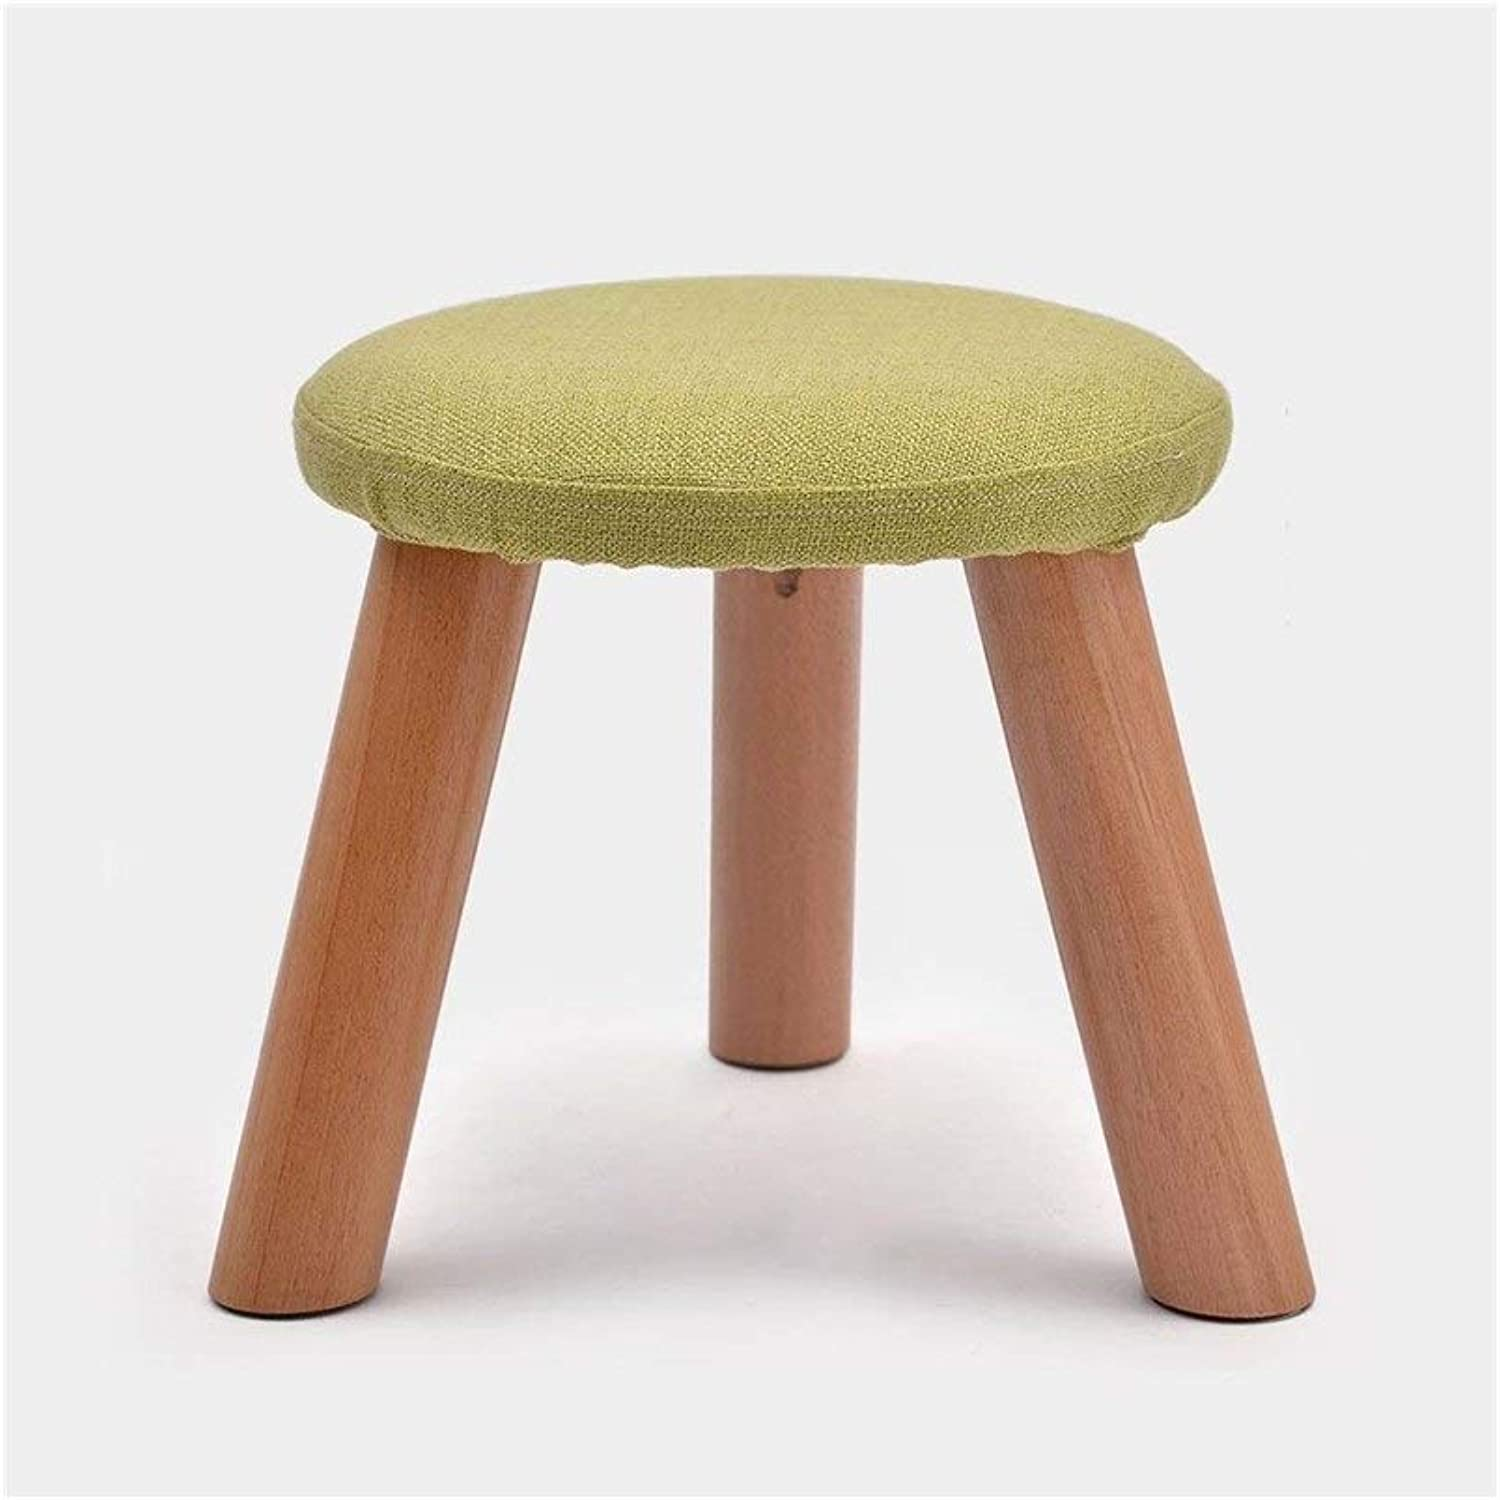 Creative shoes Stool shoes Short Solid Wood Fabric Home Small Round Sofa Coffee Table Stool Feet JINRONG (color   Green)